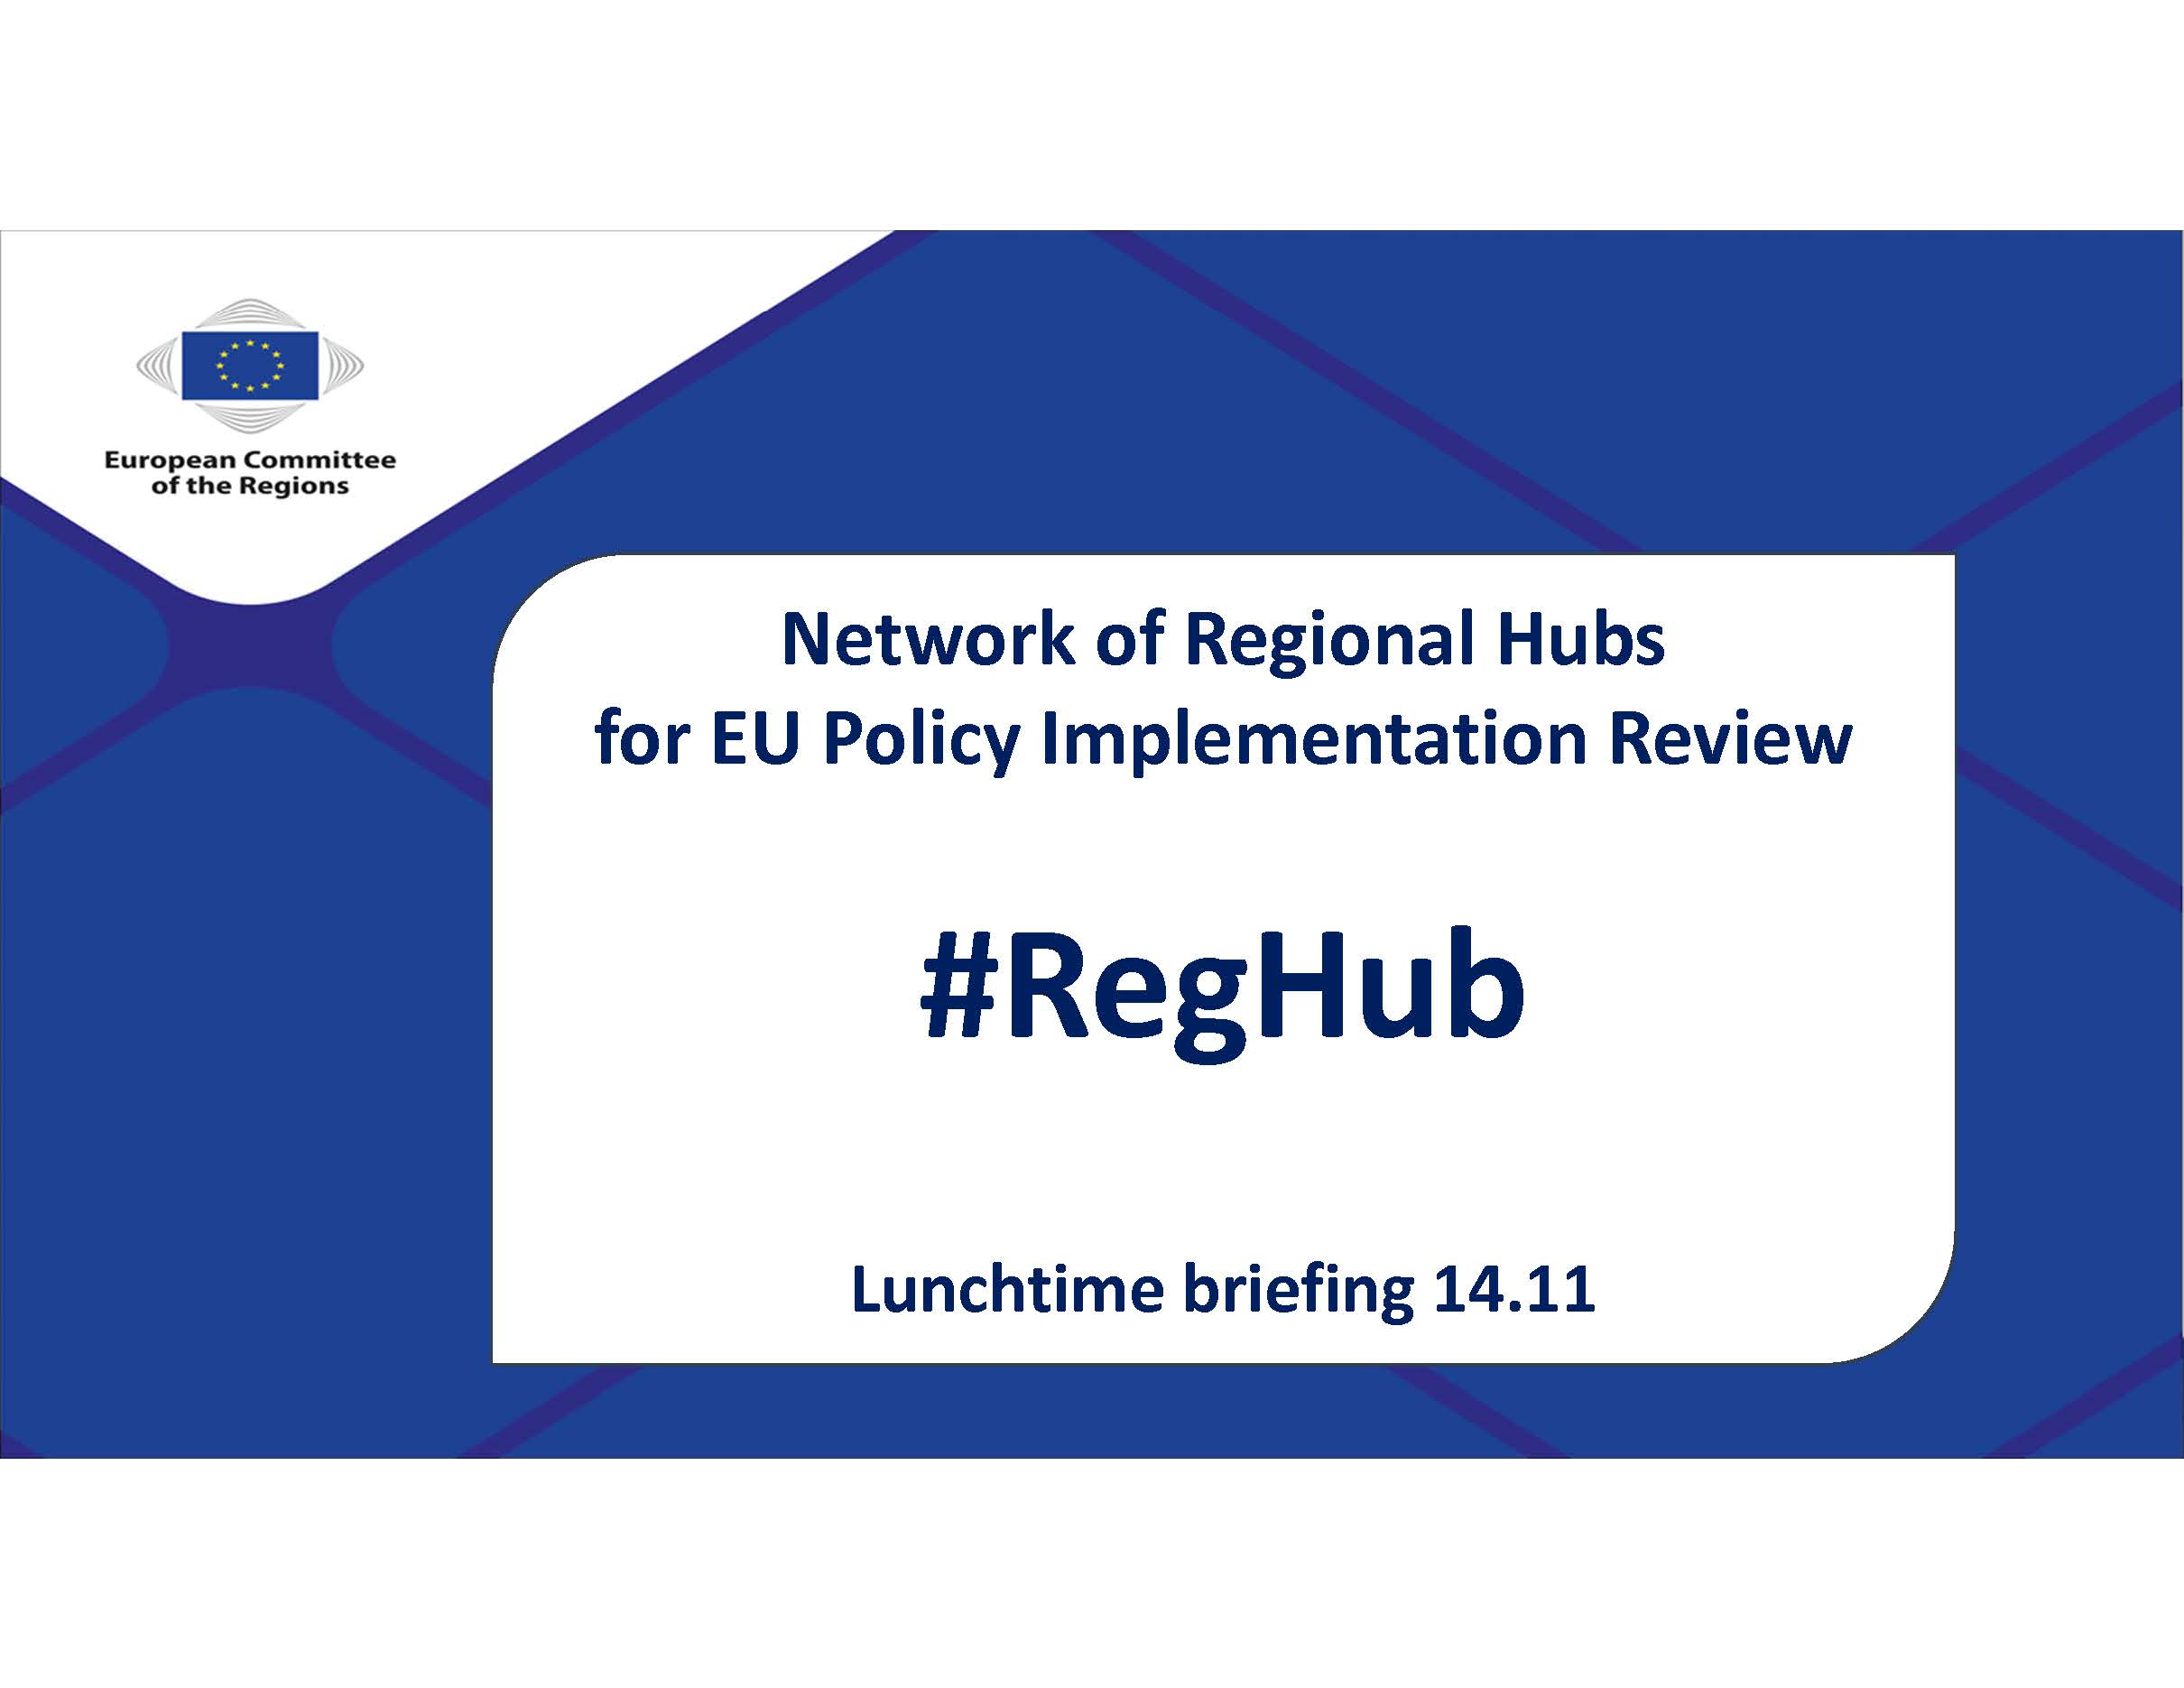 Lunchtime briefing on Network of Regional Hubs (#RegHub)